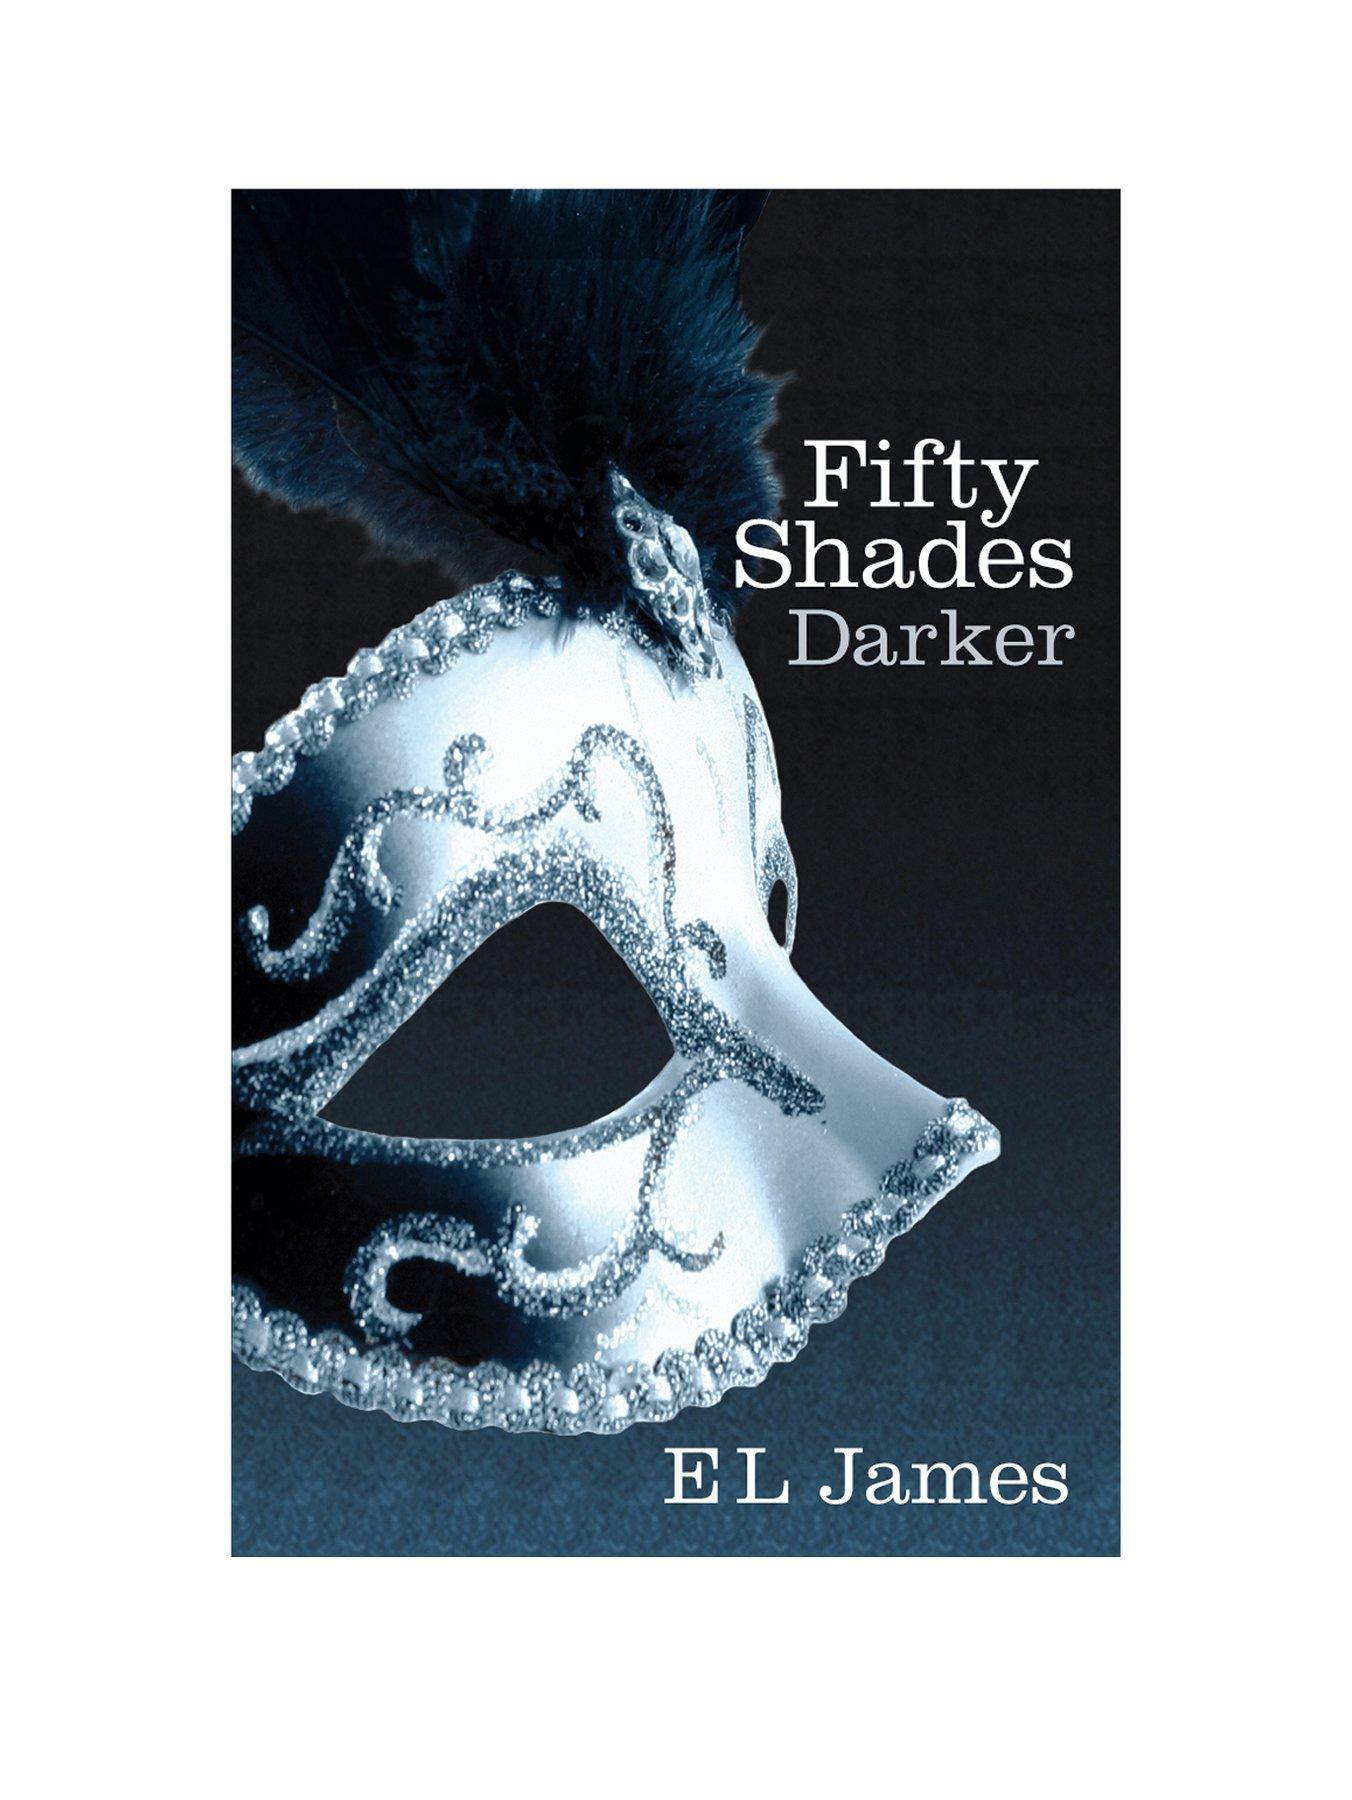 Fifty Shades Darker - By E L James (Paperback)